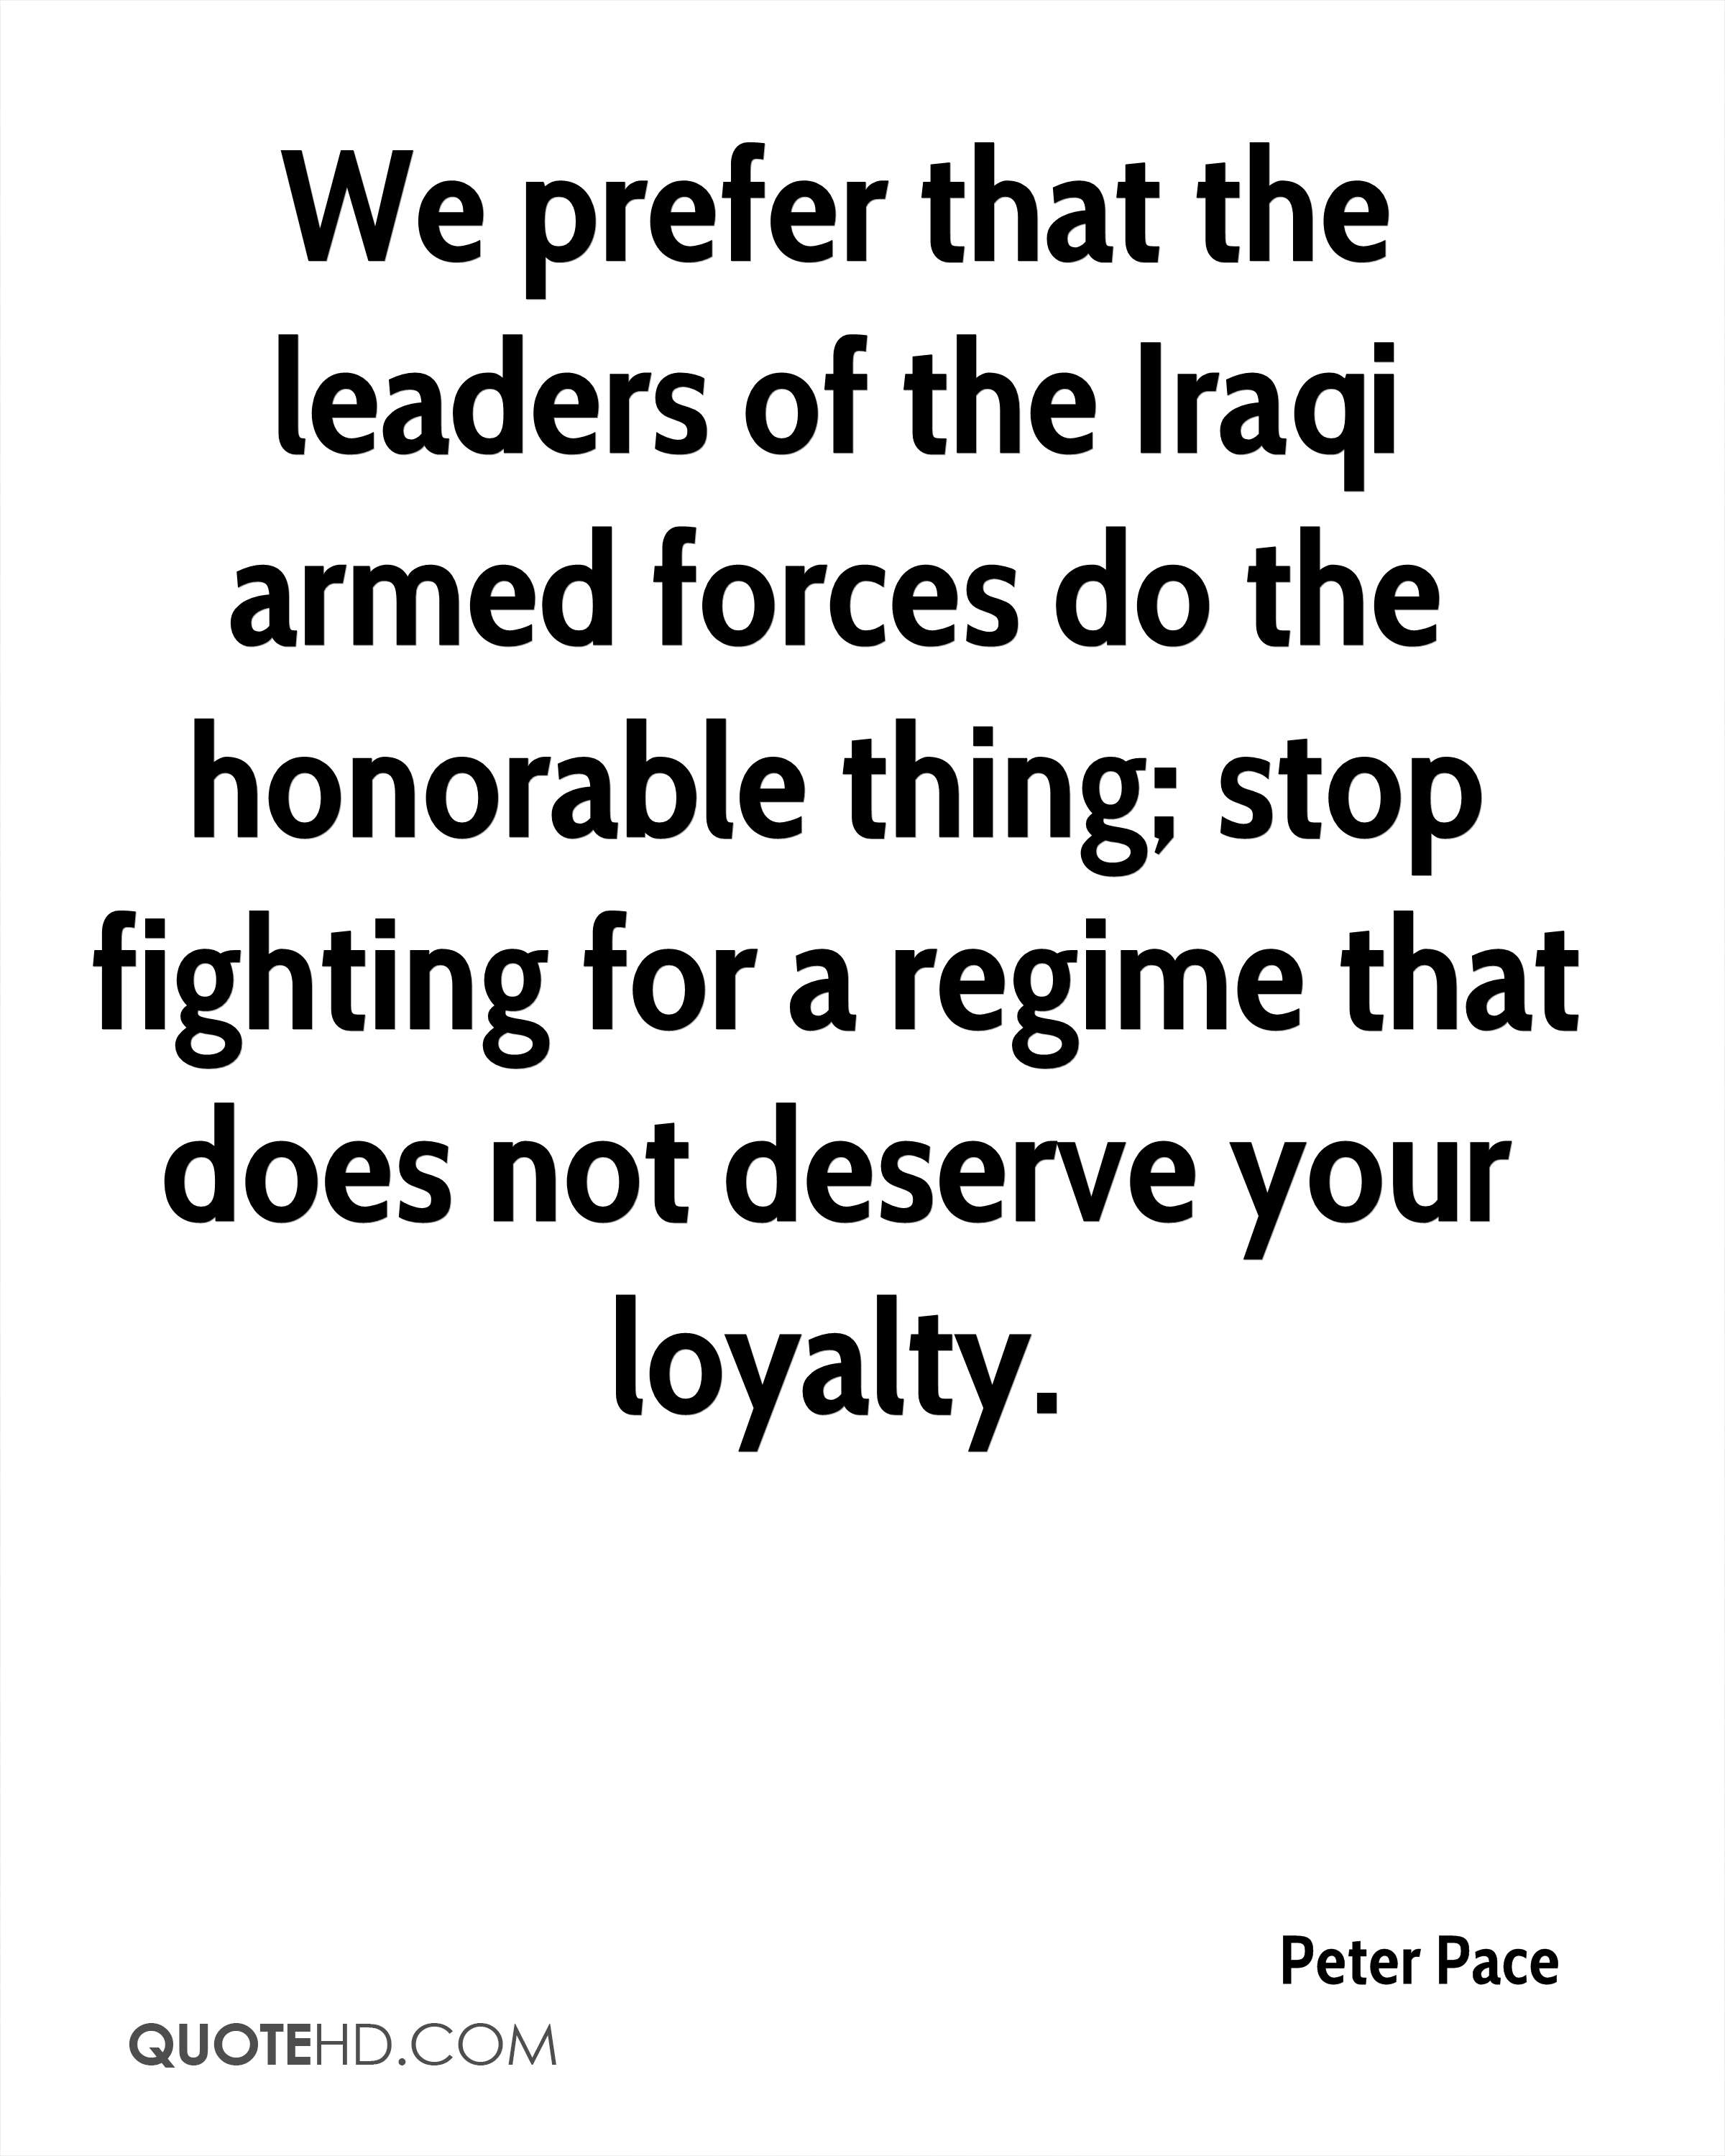 We prefer that the leaders of the Iraqi armed forces do the honorable thing; stop fighting for a regime that does not deserve your loyalty.